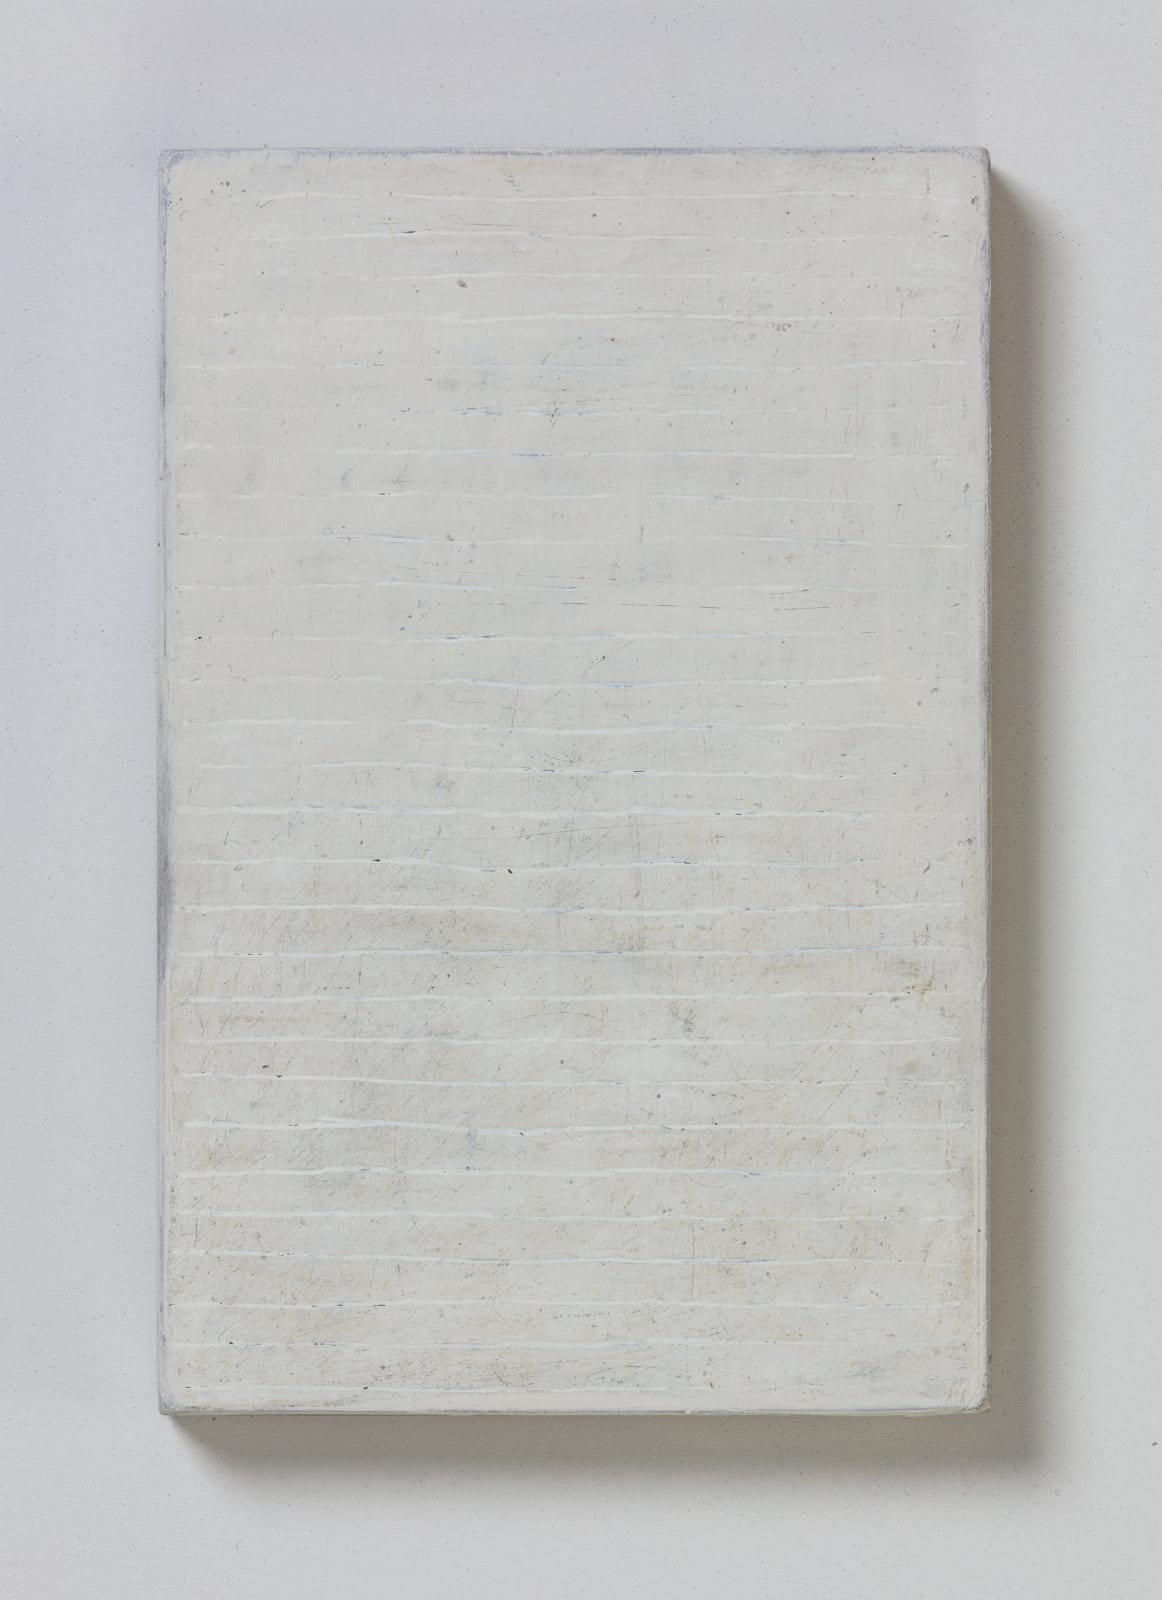 No.2, from flume series, 2020 oil on paper on wood 20.5 x 13.5 cm / 8 x 5.3 in